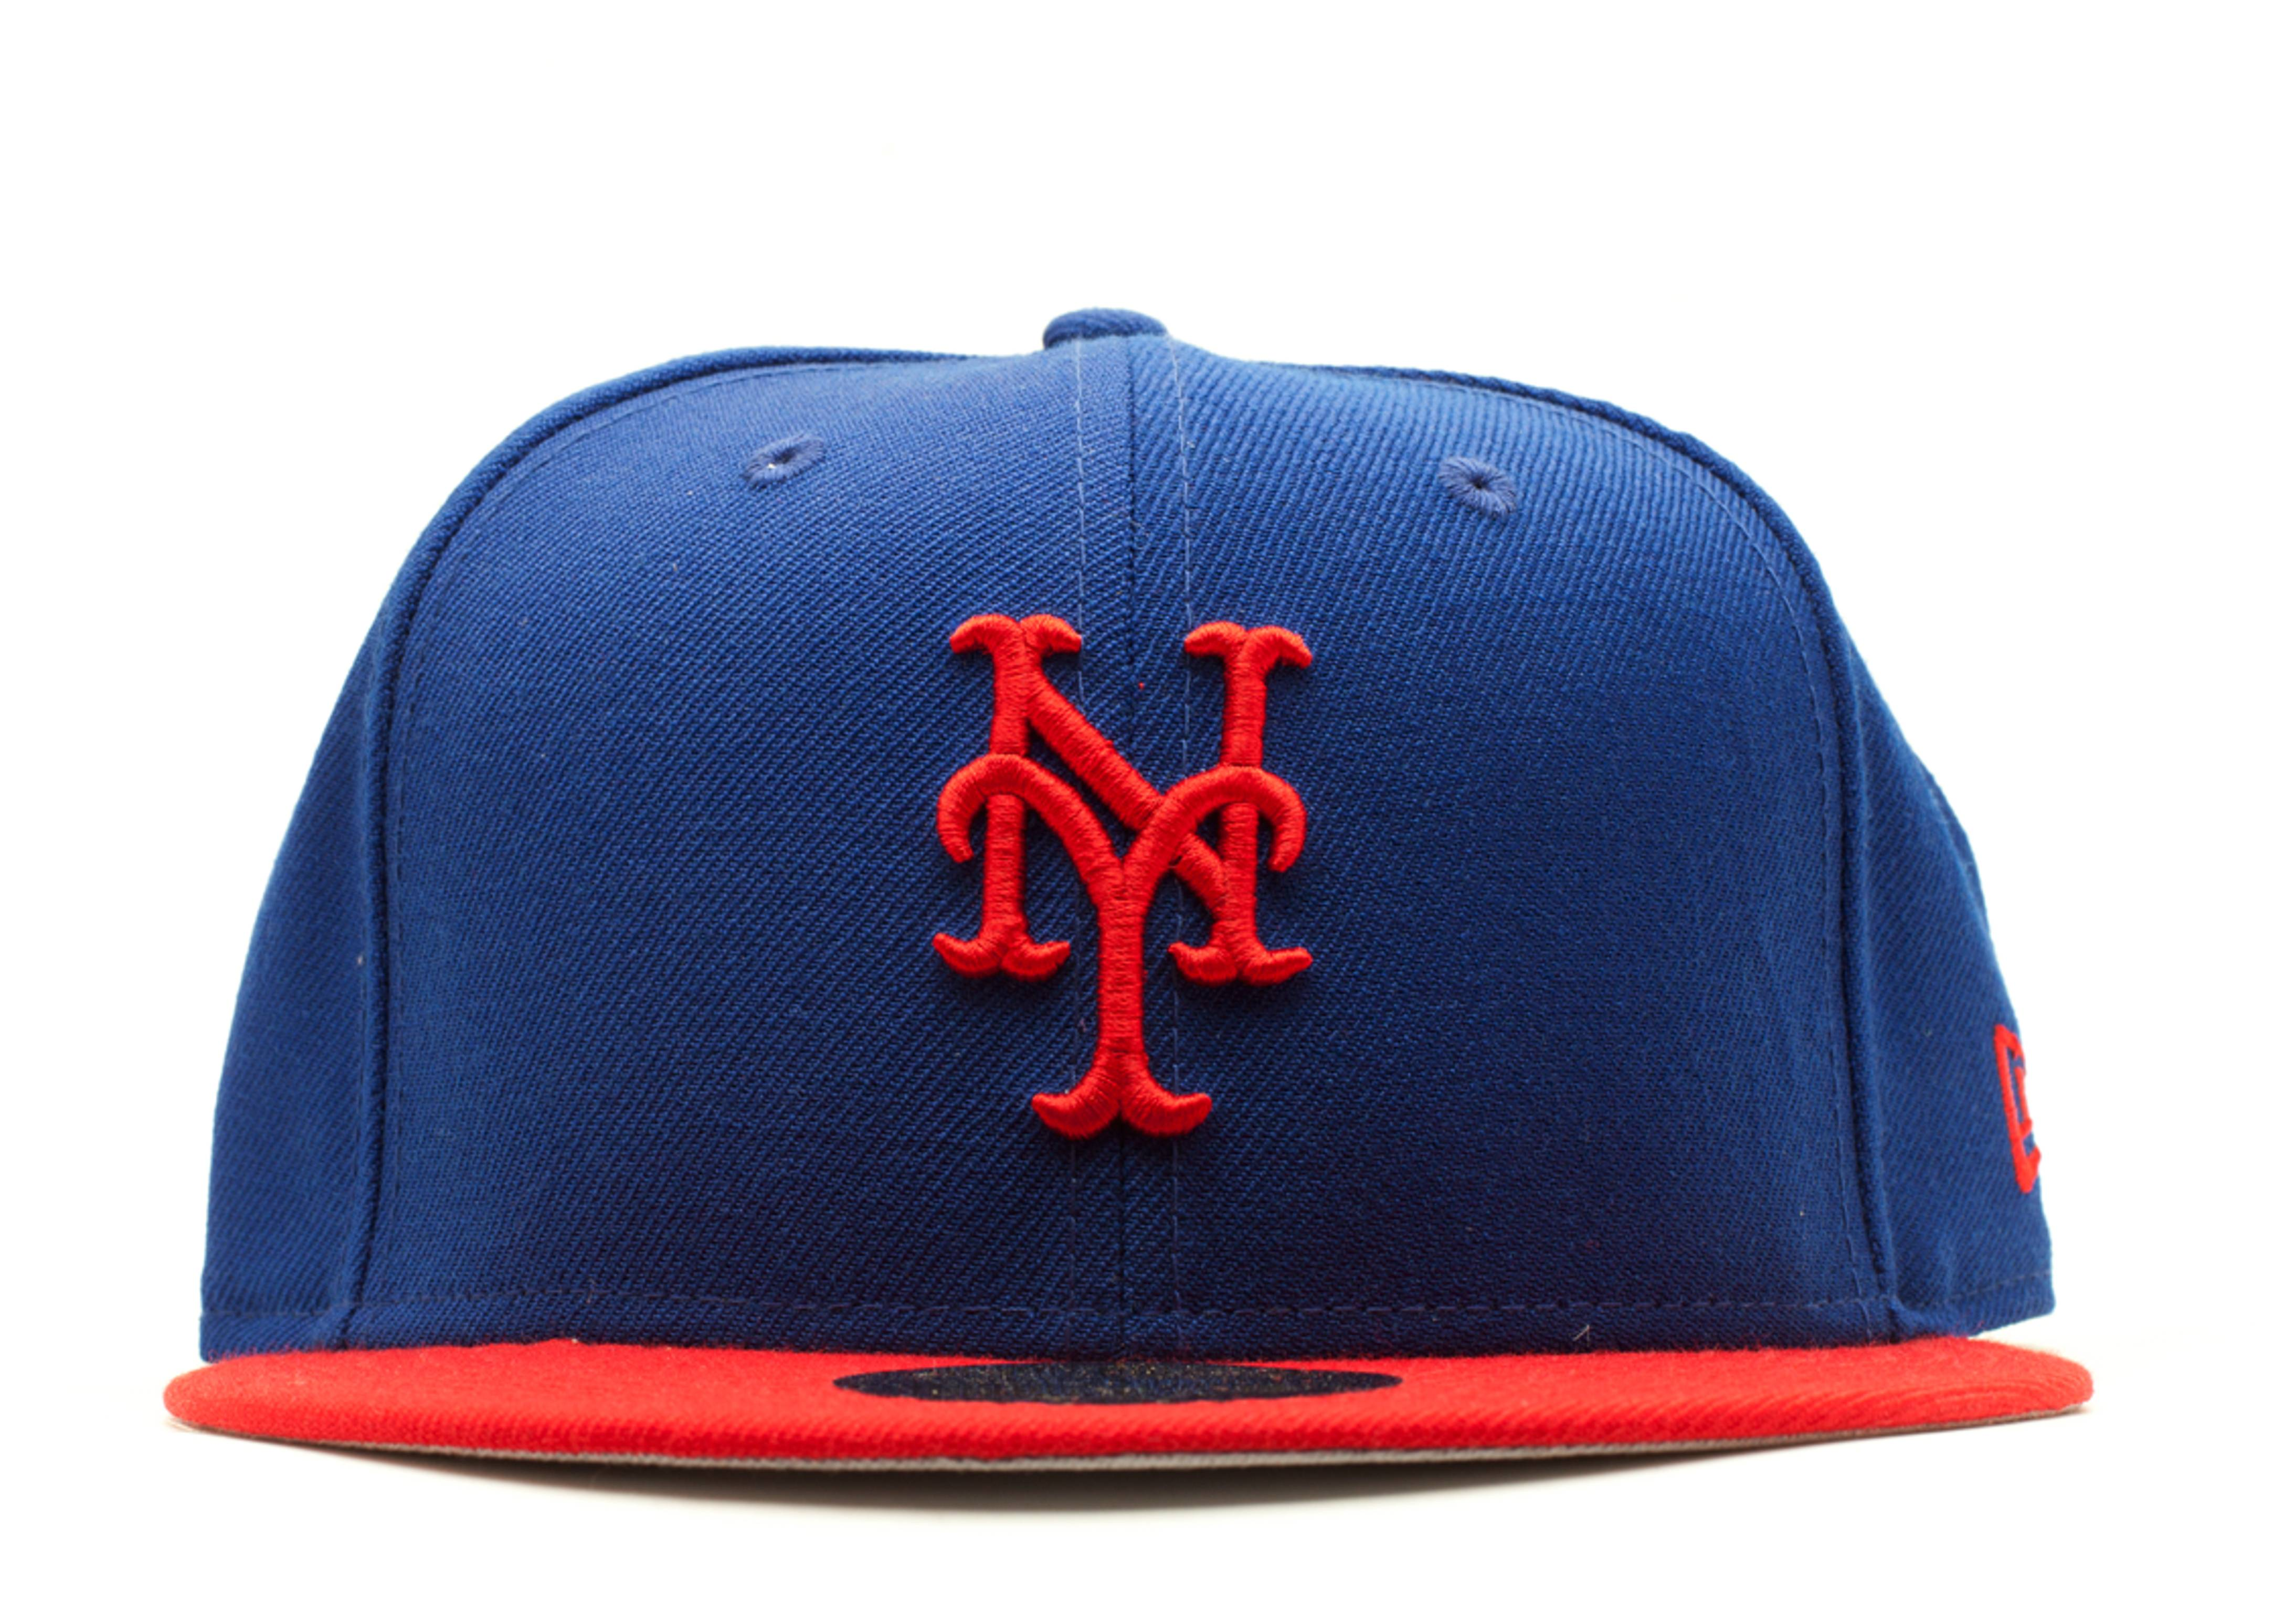 new york mets fitted